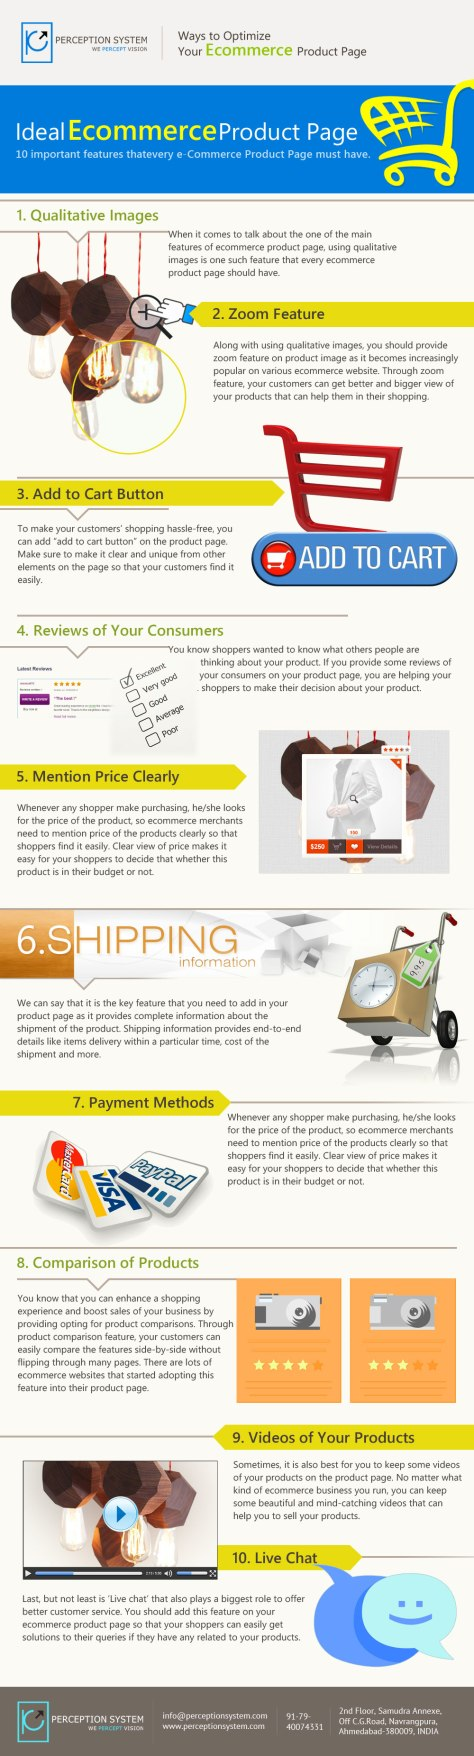 10 Ecommerce Product Page Features That Must Be Considered